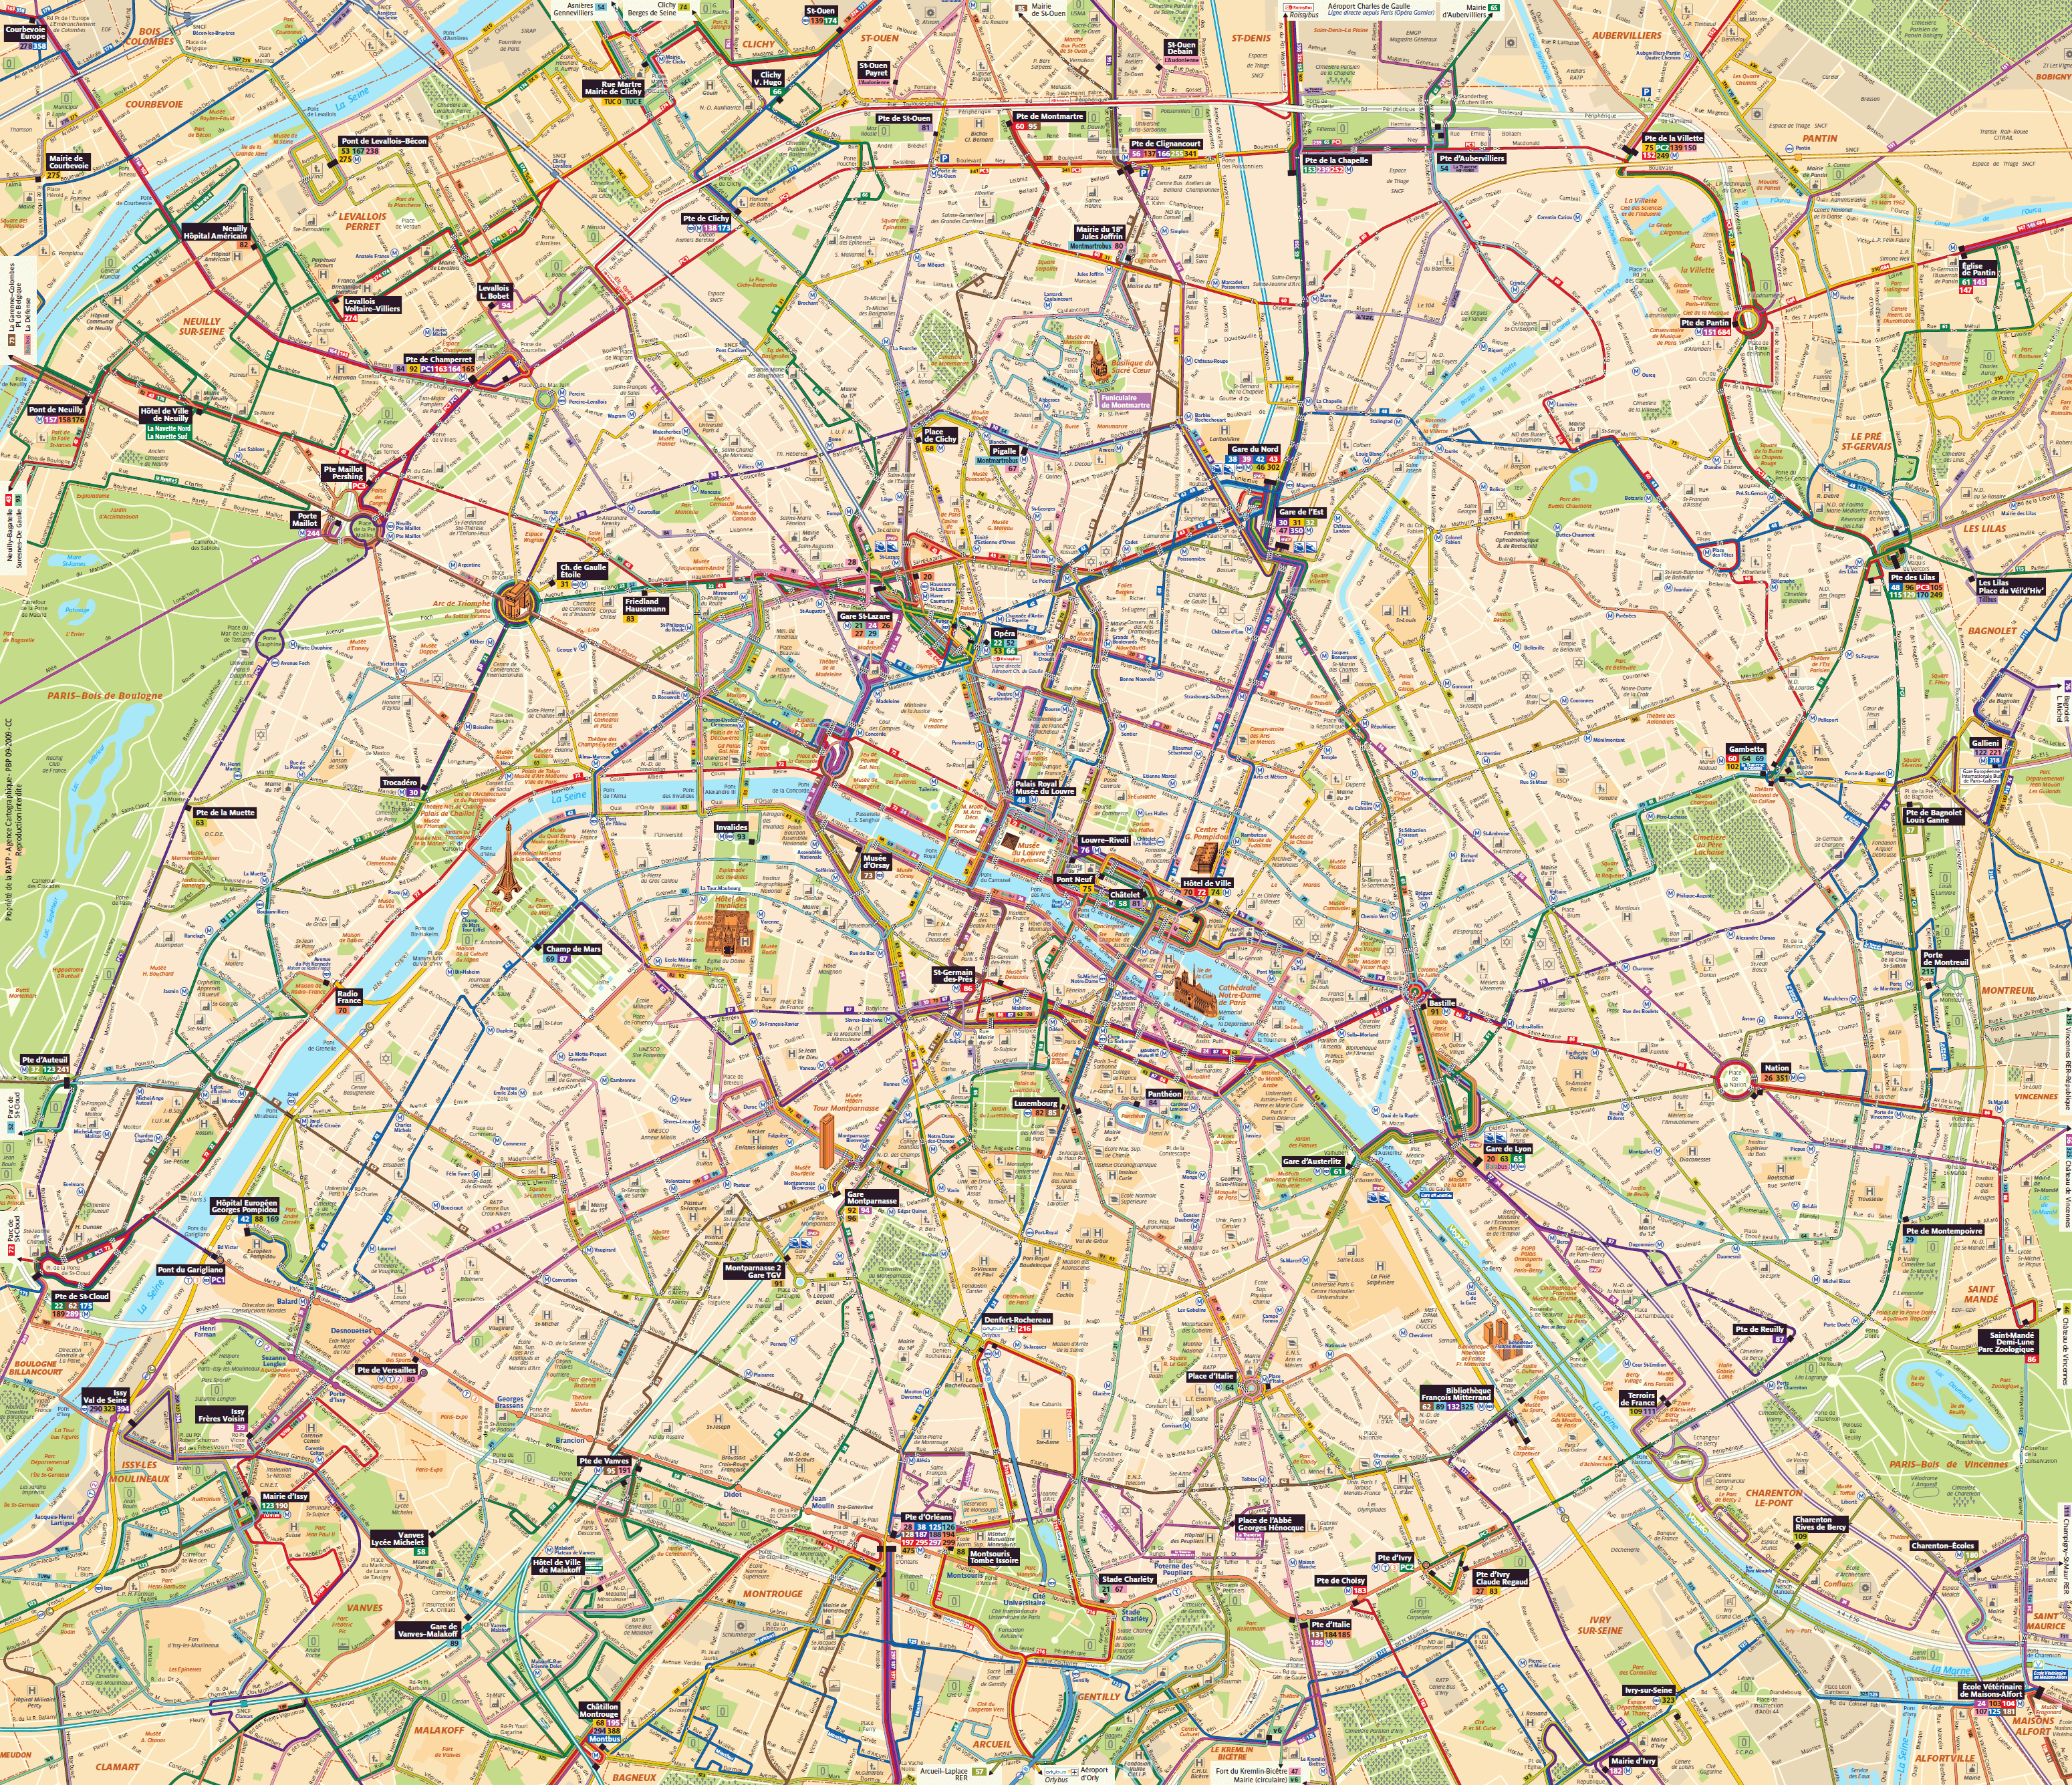 map orientation definition with Carte Bus Paris Grand on Use Blindsquare Teach  pass Directions likewise Carte Bus Paris Grand in addition How To Develop And Deploy Your Hrm Strategy Manual besides North arrow images clip art together with 007328.